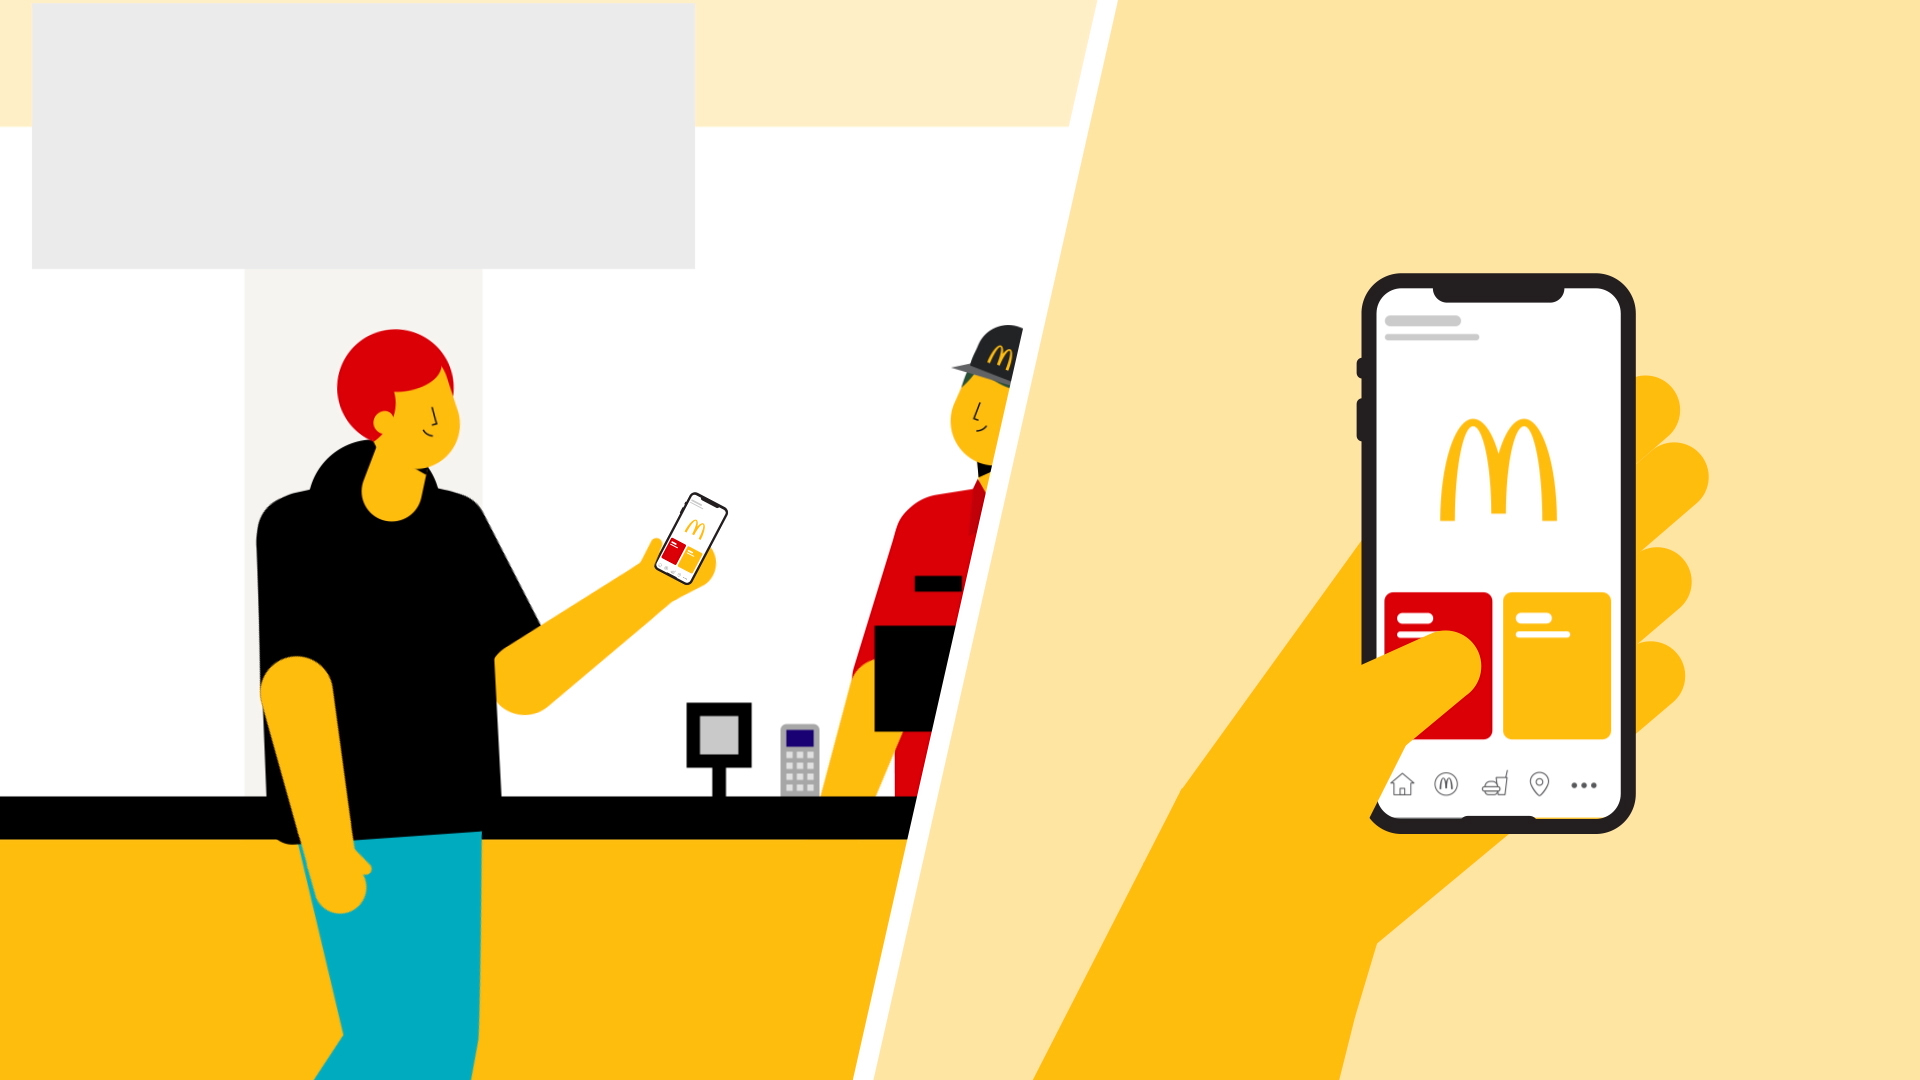 illustration from McDonald's by Dani Montesinos